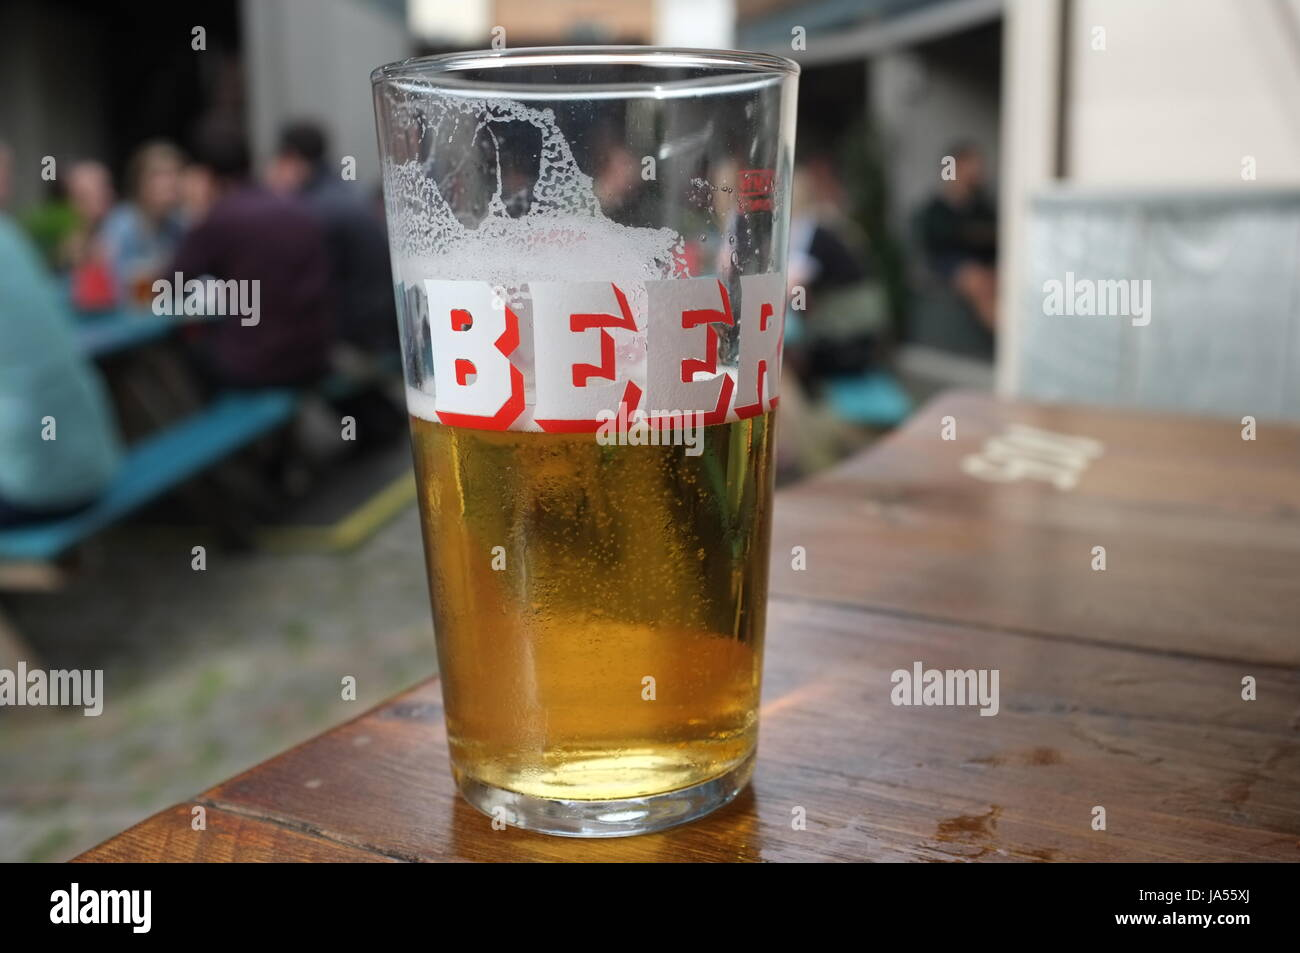 A pint glass with the word 'Beer' on it in the outside garden of a pub in Oxford, England, United Kingdom. - Stock Image